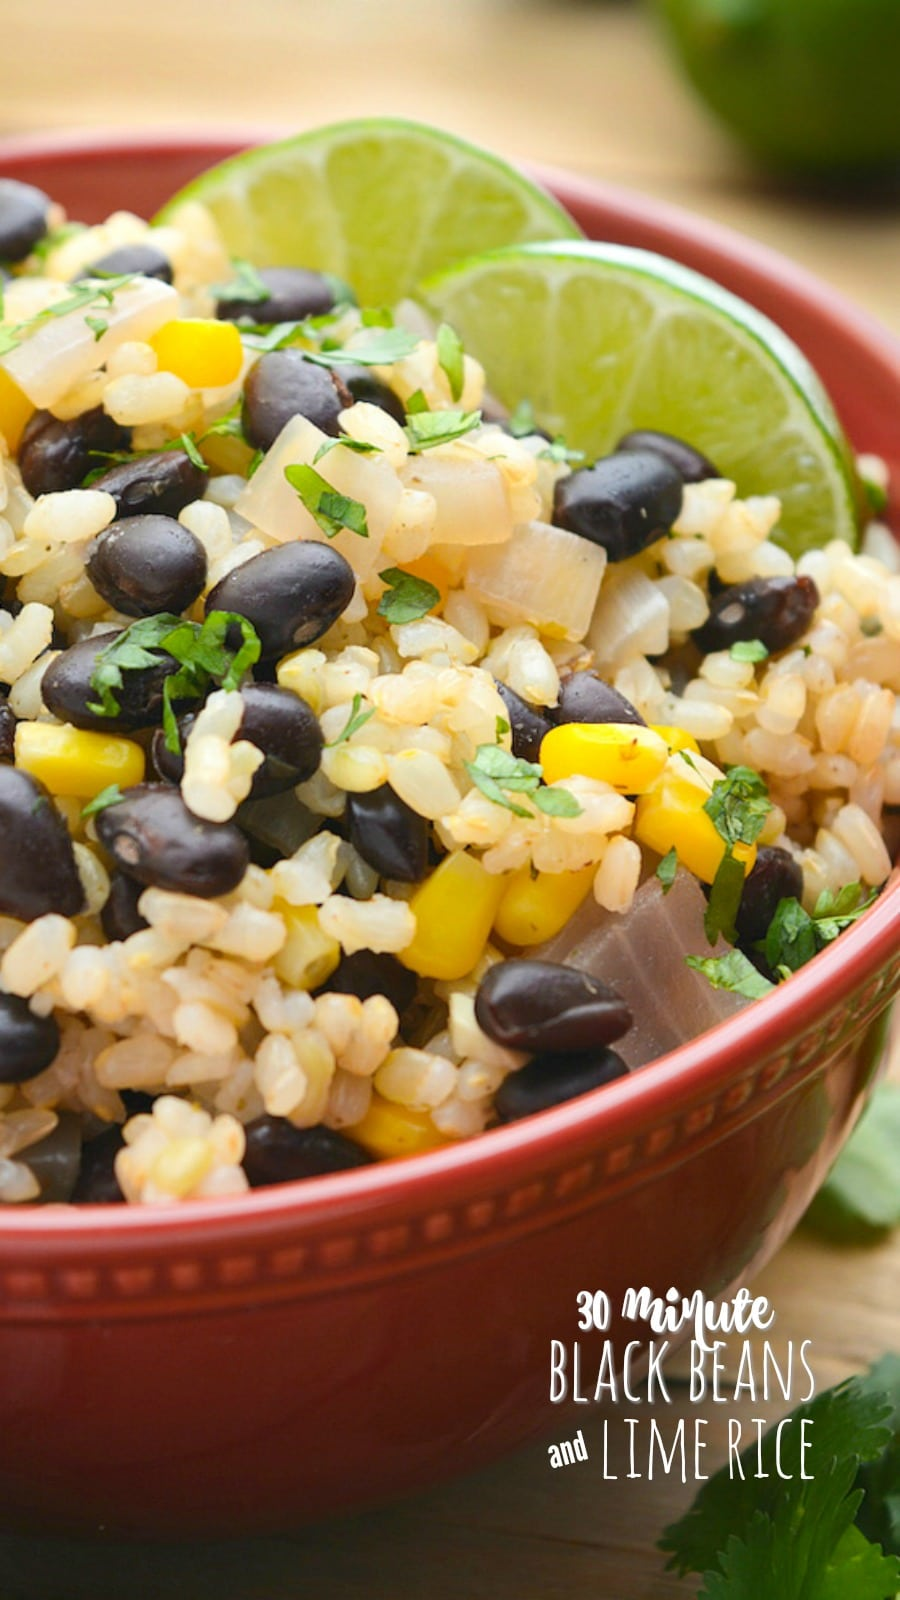 a close up of black beans and lime rice.